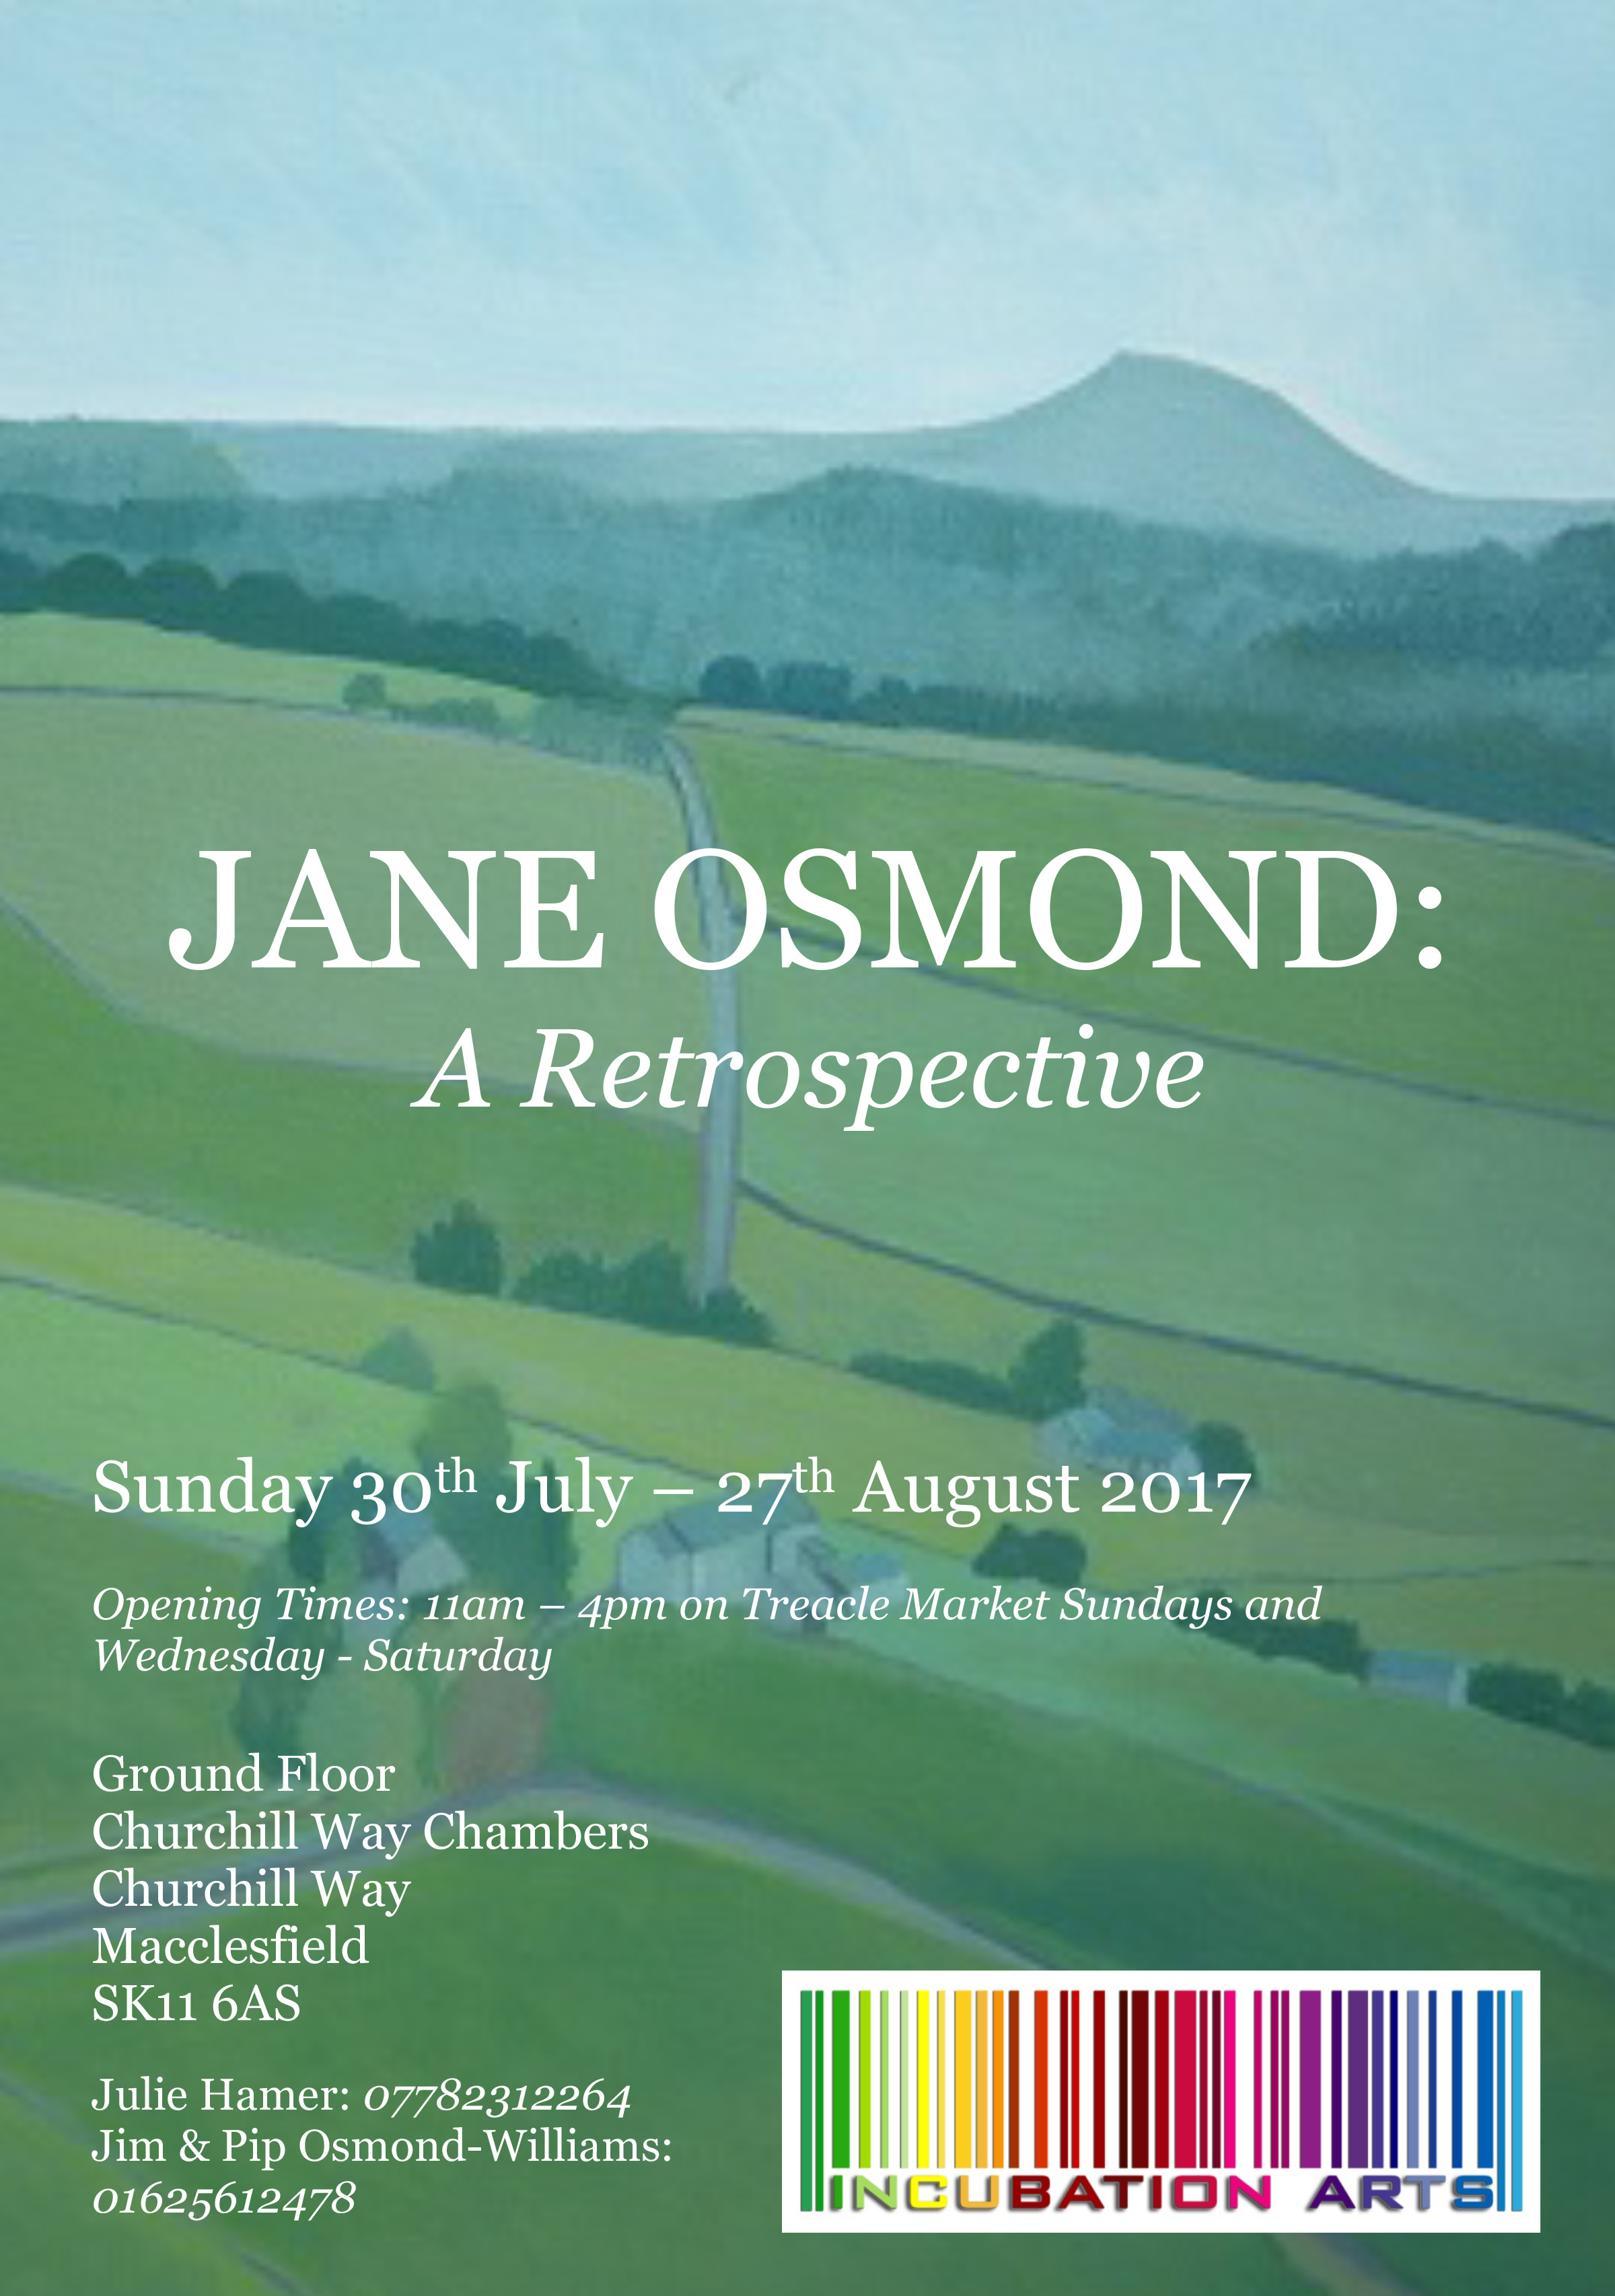 Retrospective Jane Osmond July 30th to 27th August 2017